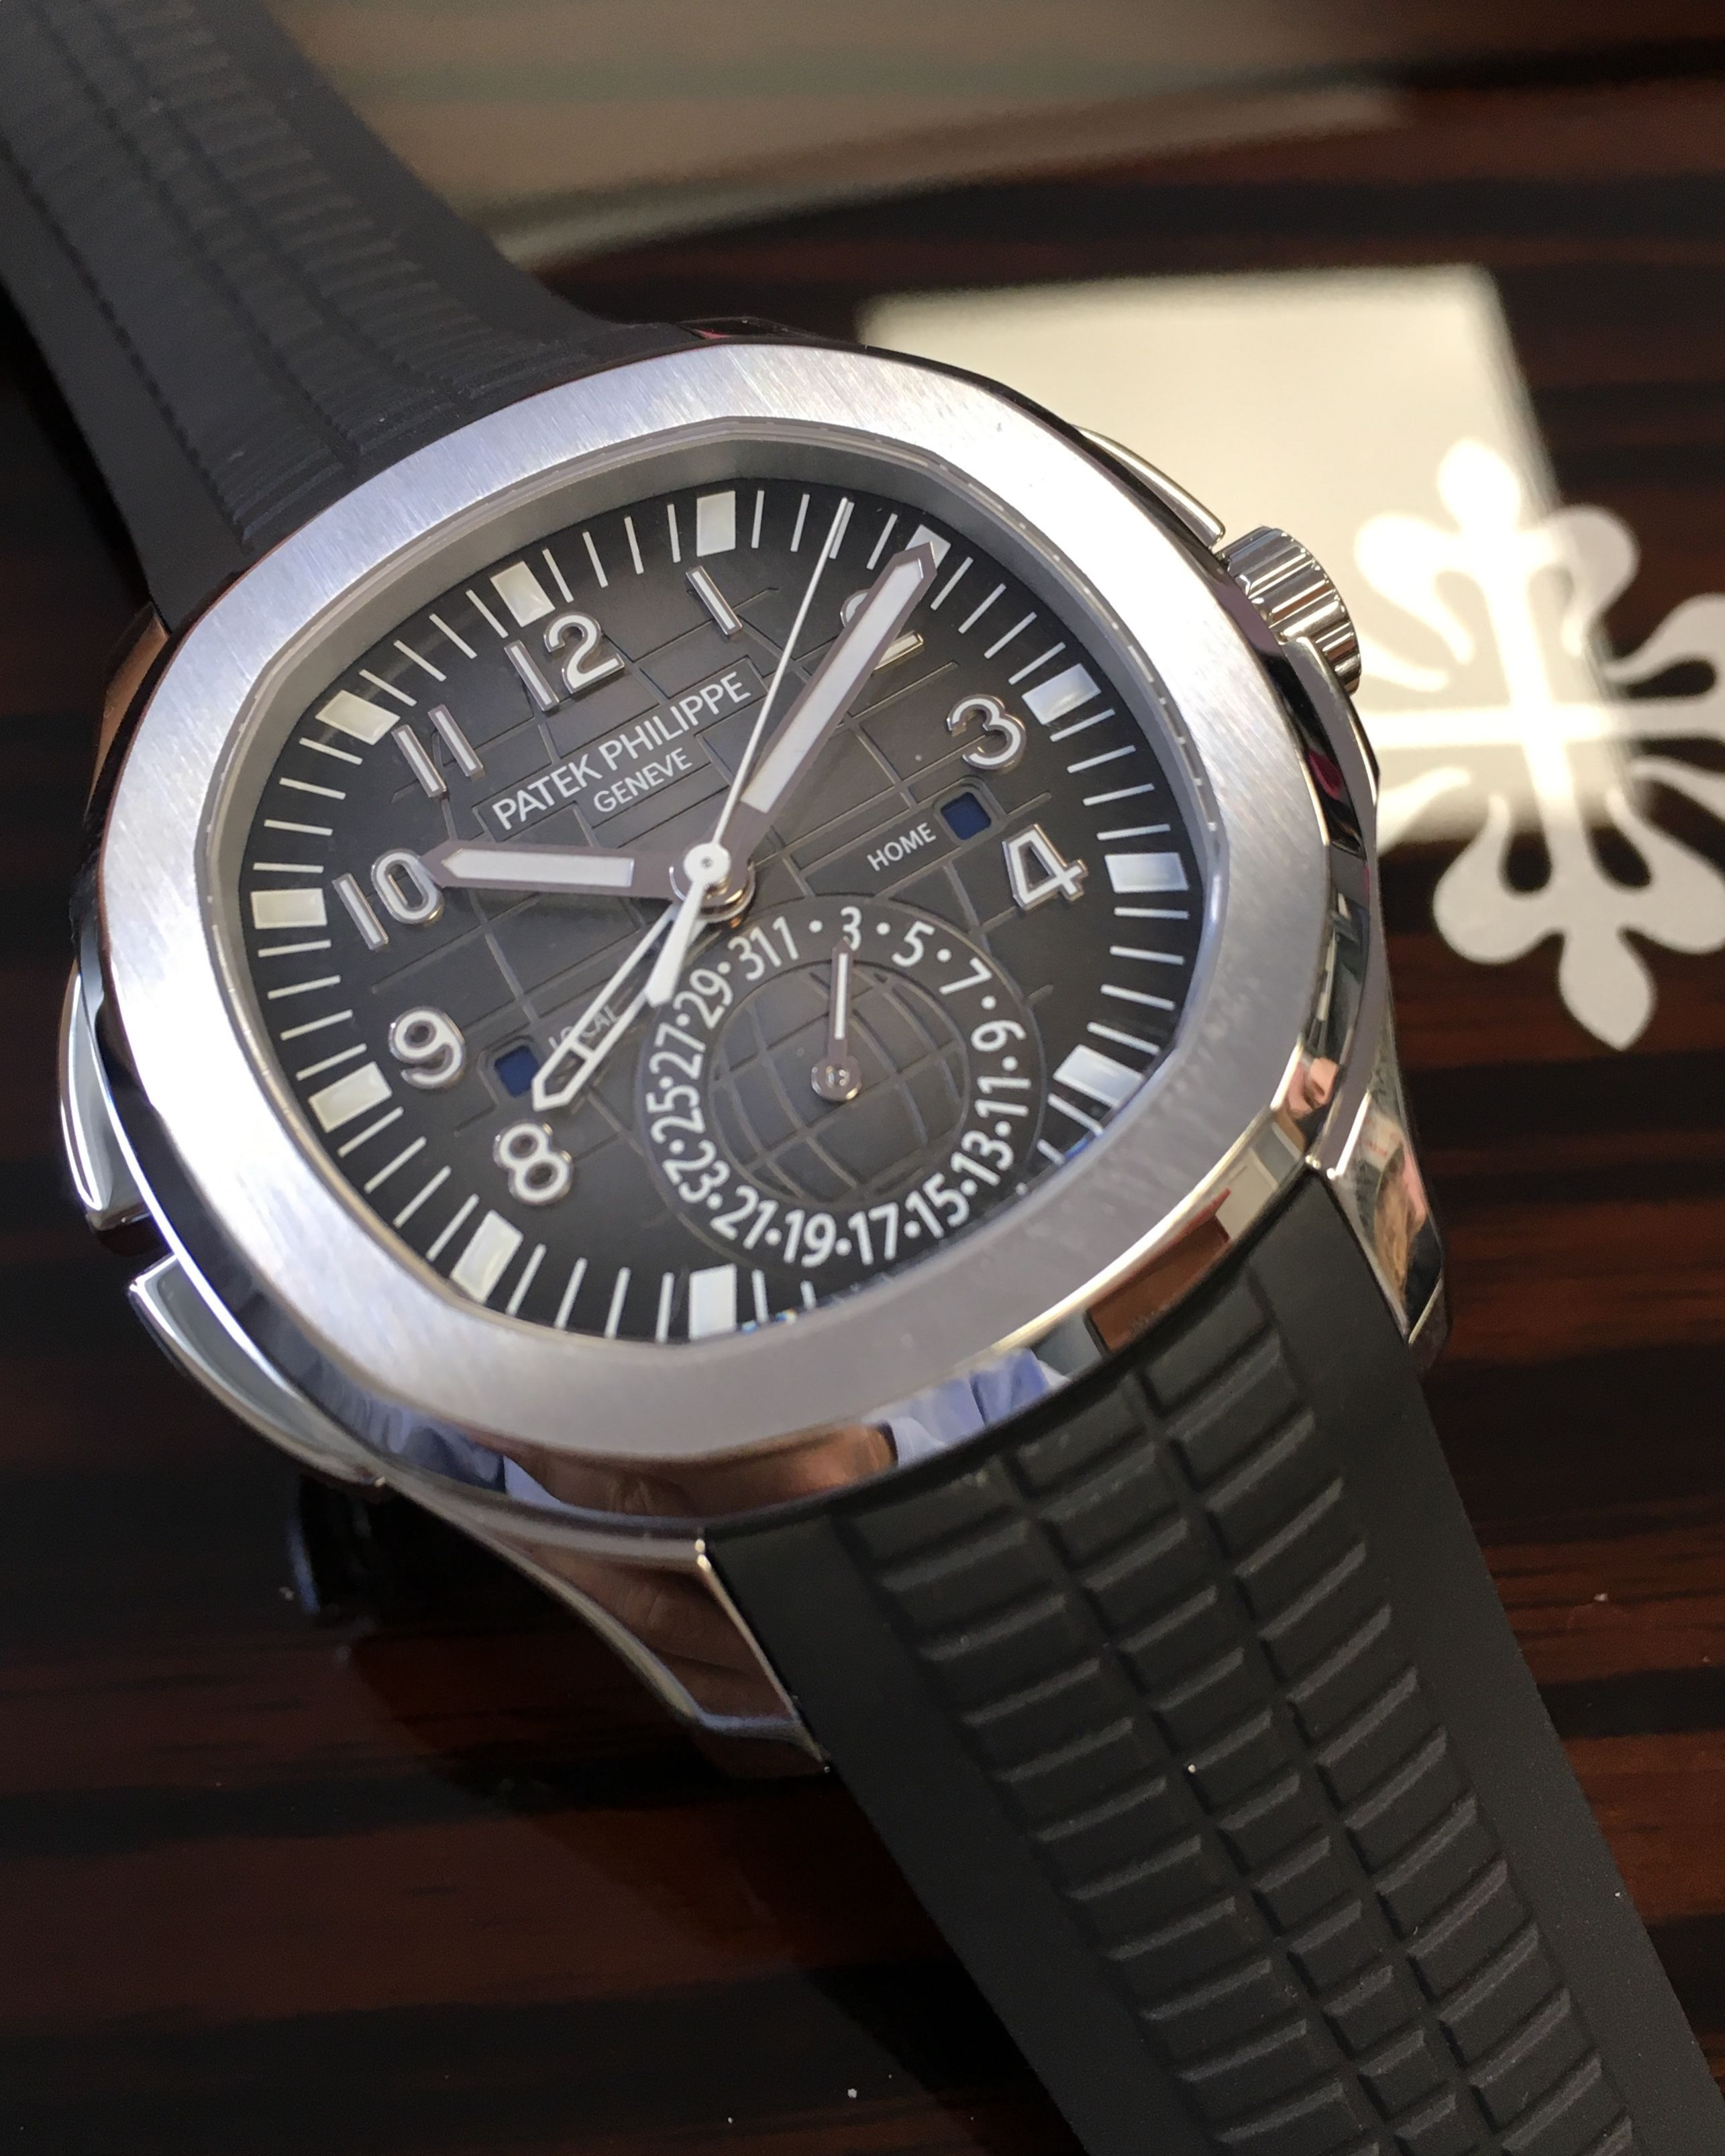 Patek Philippe Aquanaut Travel Time 5164a 001 Time In 2019